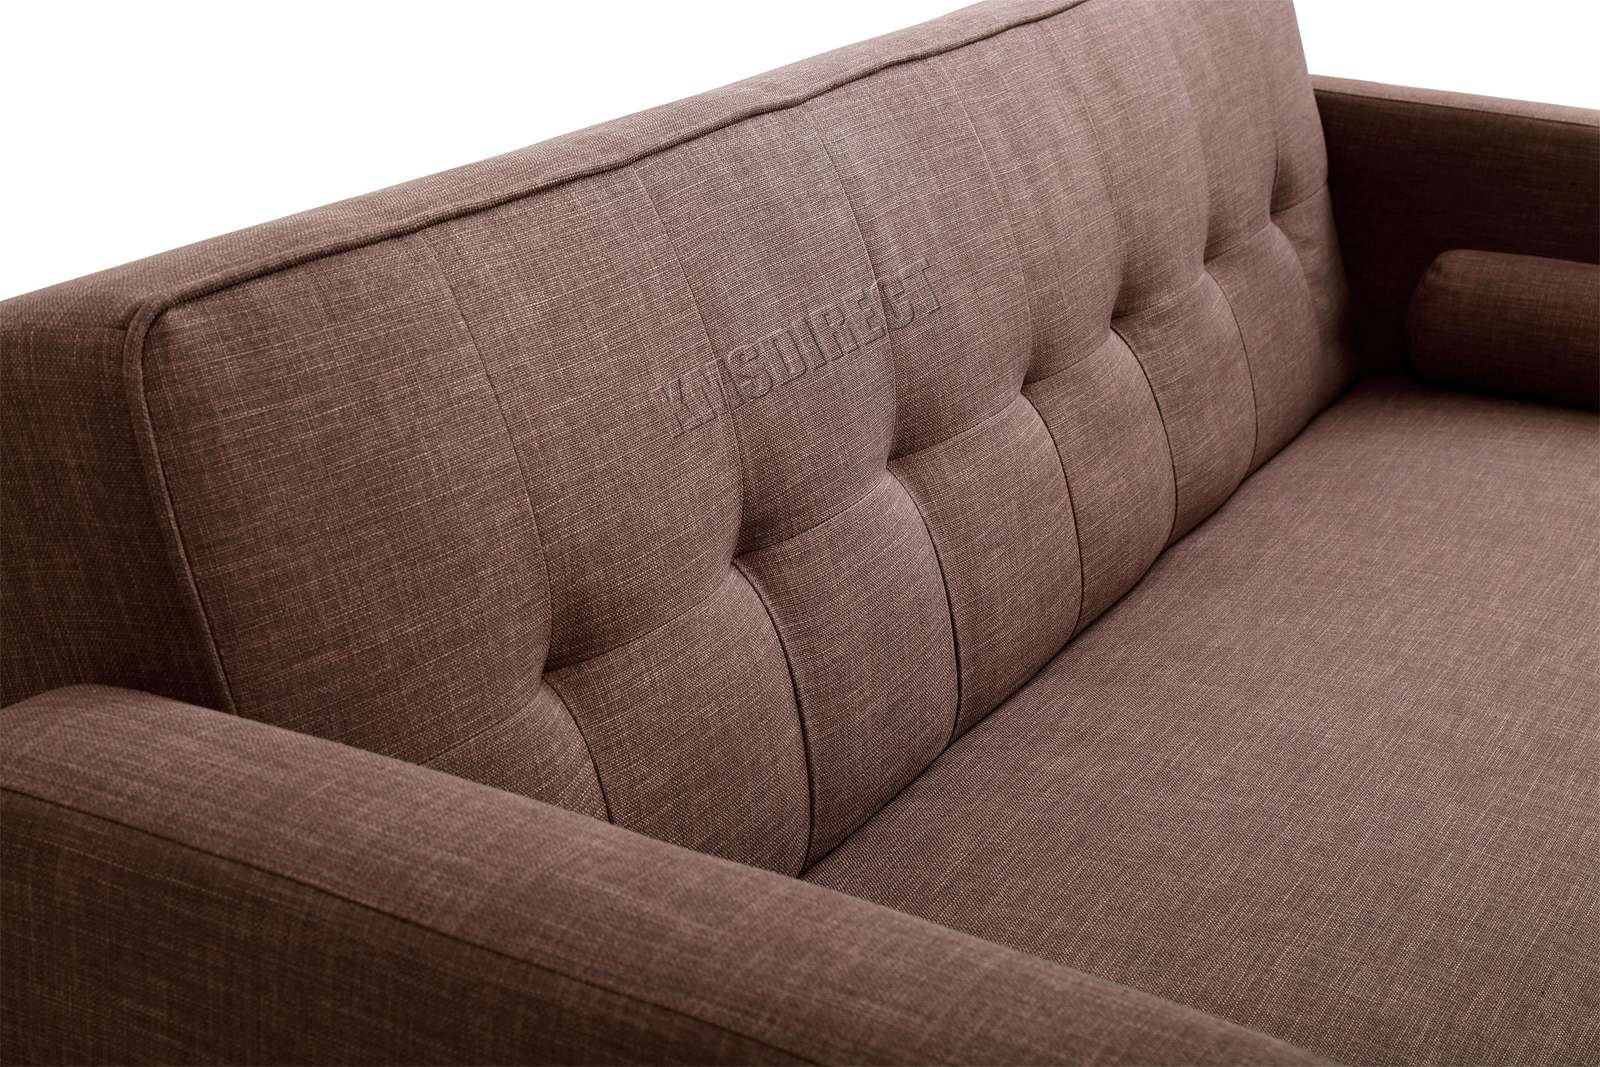 WestWood-Fabric-Sofa-Bed-3-Seater-Couch-Luxury-Modern-Home-Furniture-FSB04-New thumbnail 25